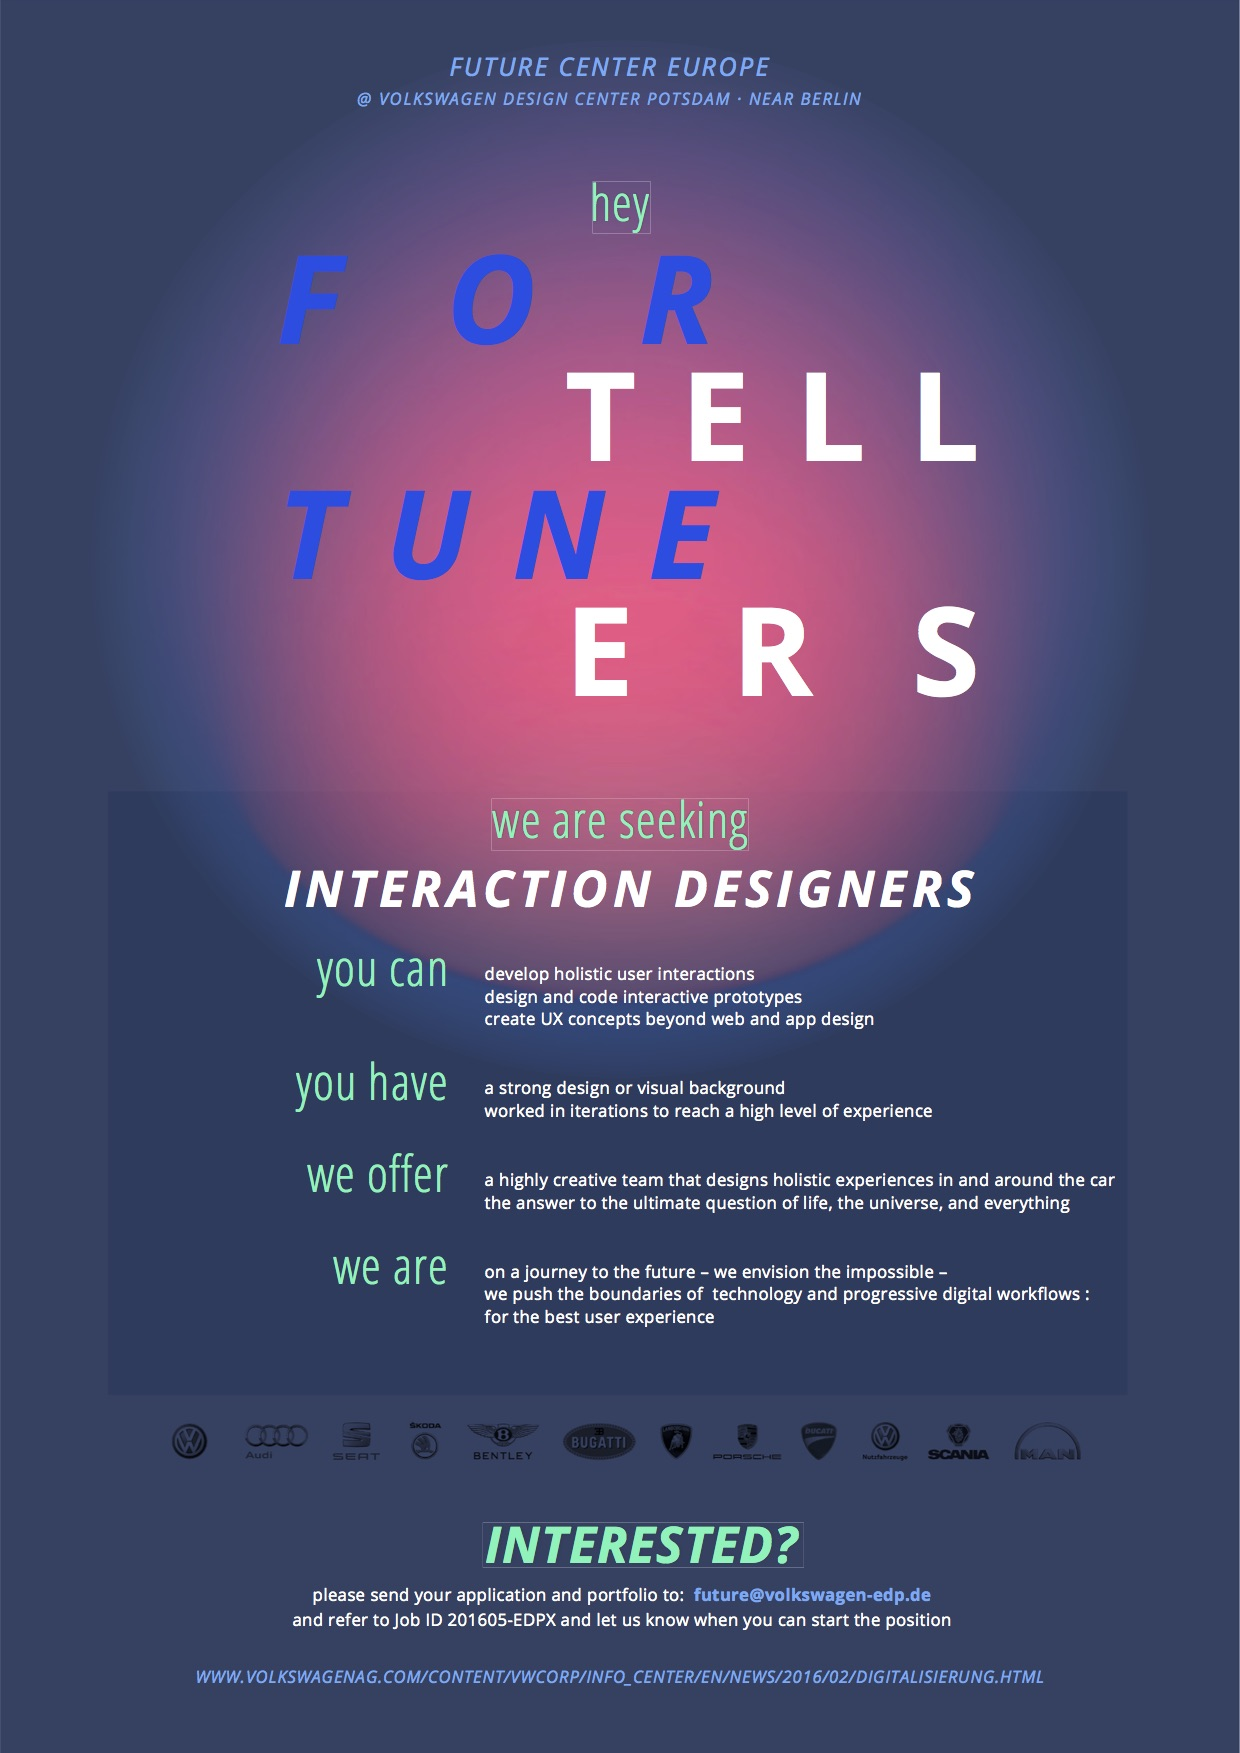 Interaction Designers wanted